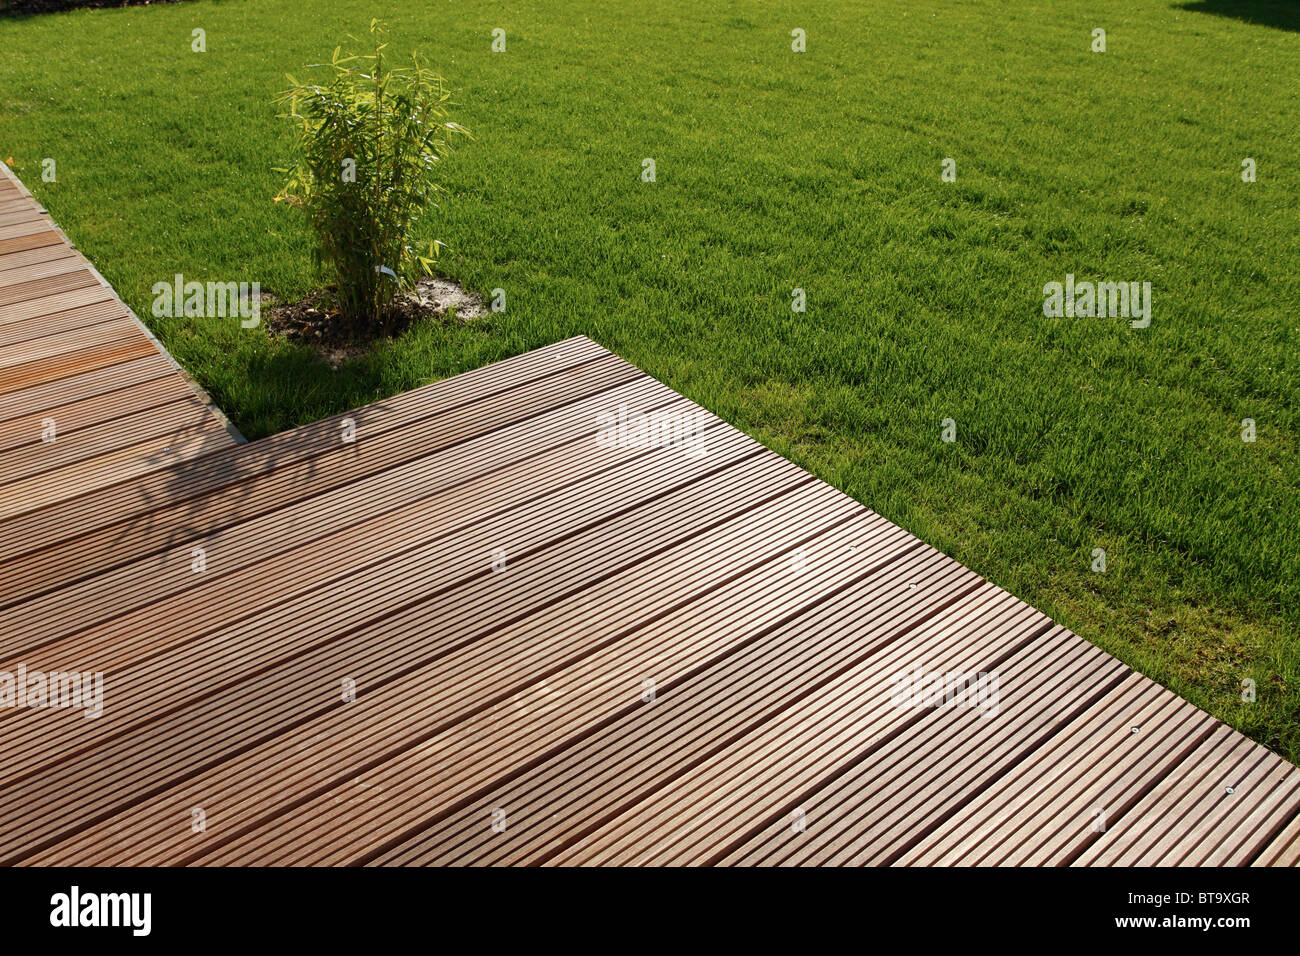 holz terrasse und liegewiese stockfoto bild 32180535 alamy. Black Bedroom Furniture Sets. Home Design Ideas